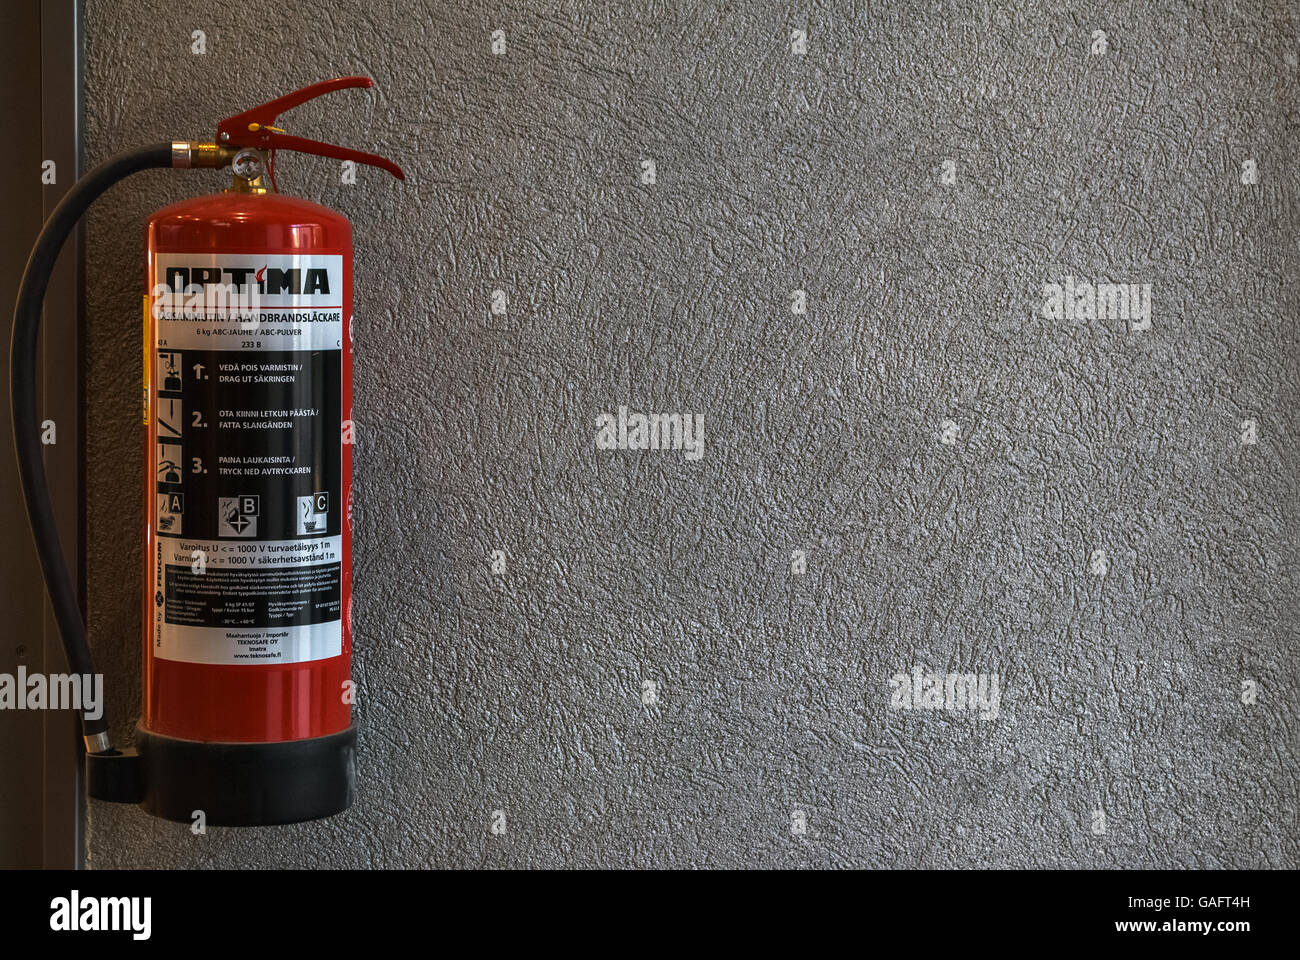 Red fire extinguisher hanging on the wall inside a shopping complex in the city of Lappeenranta, Finland. - Stock Image